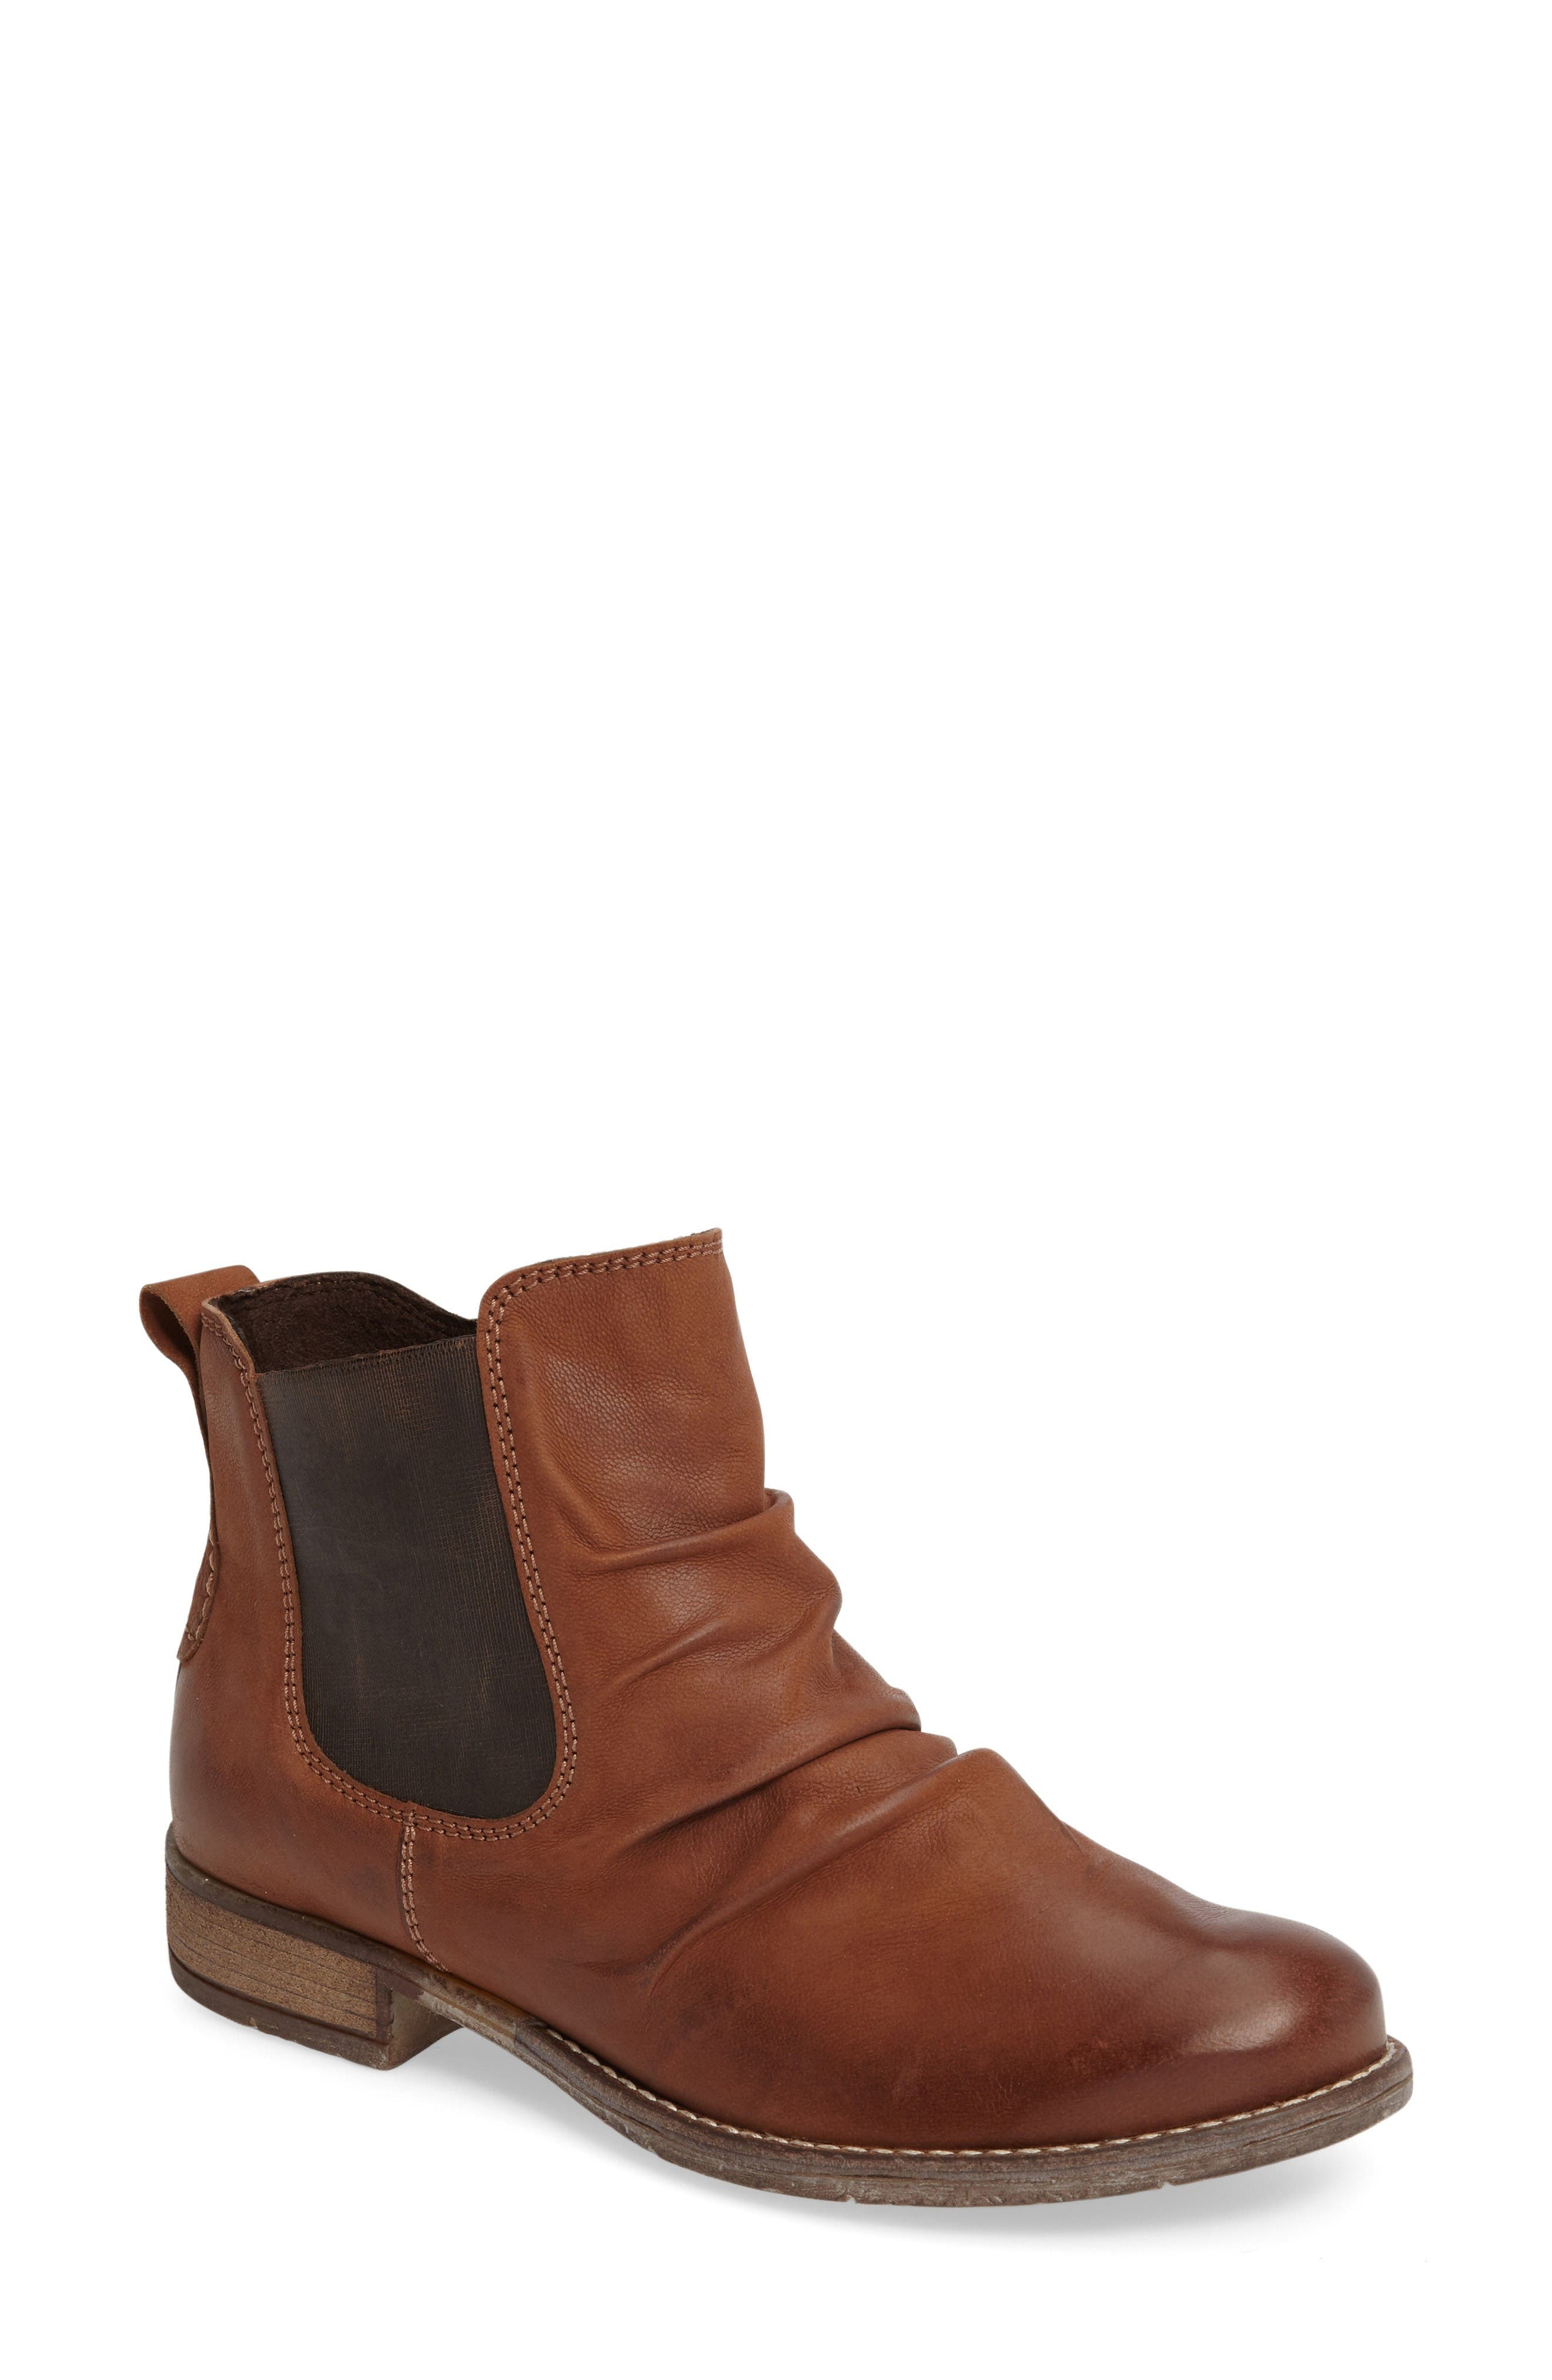 Sienna 59 Slouchy Chelsea Bootie,                             Main thumbnail 1, color,                             Castagne Leather